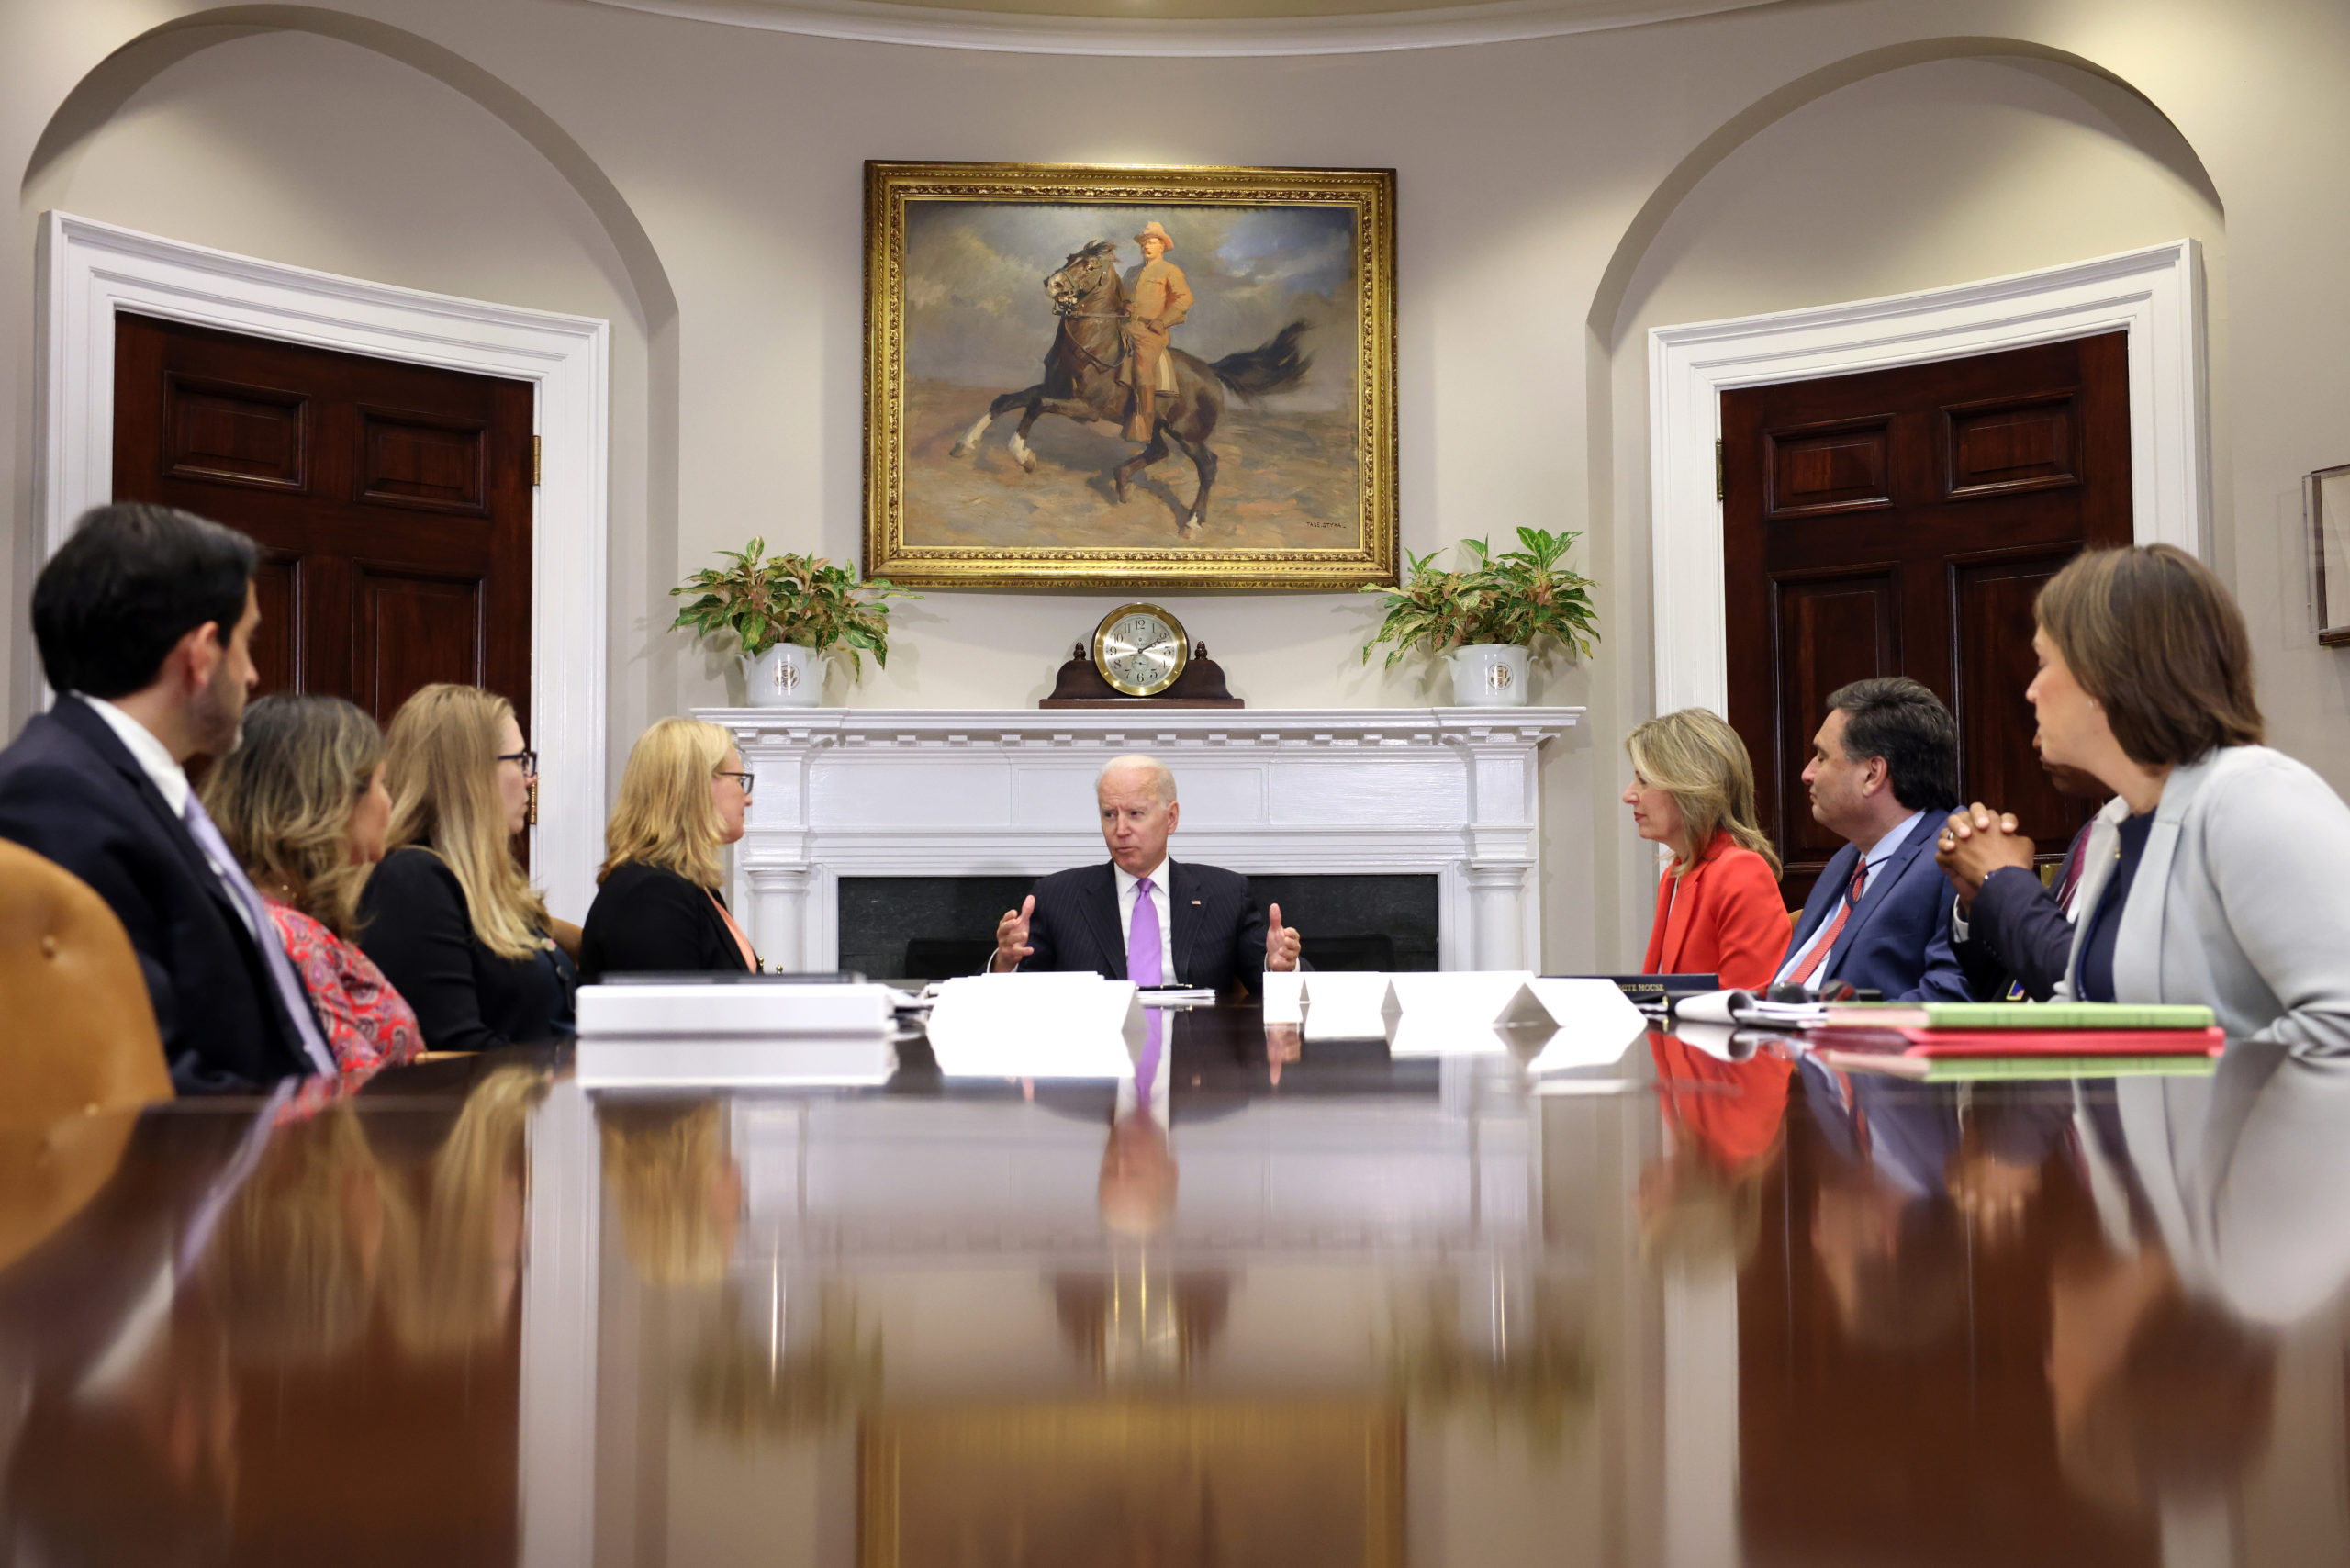 President Joe Biden delivers remarks at a meeting with top administration officials Tuesday. (Kevin Dietsch/Getty Images)